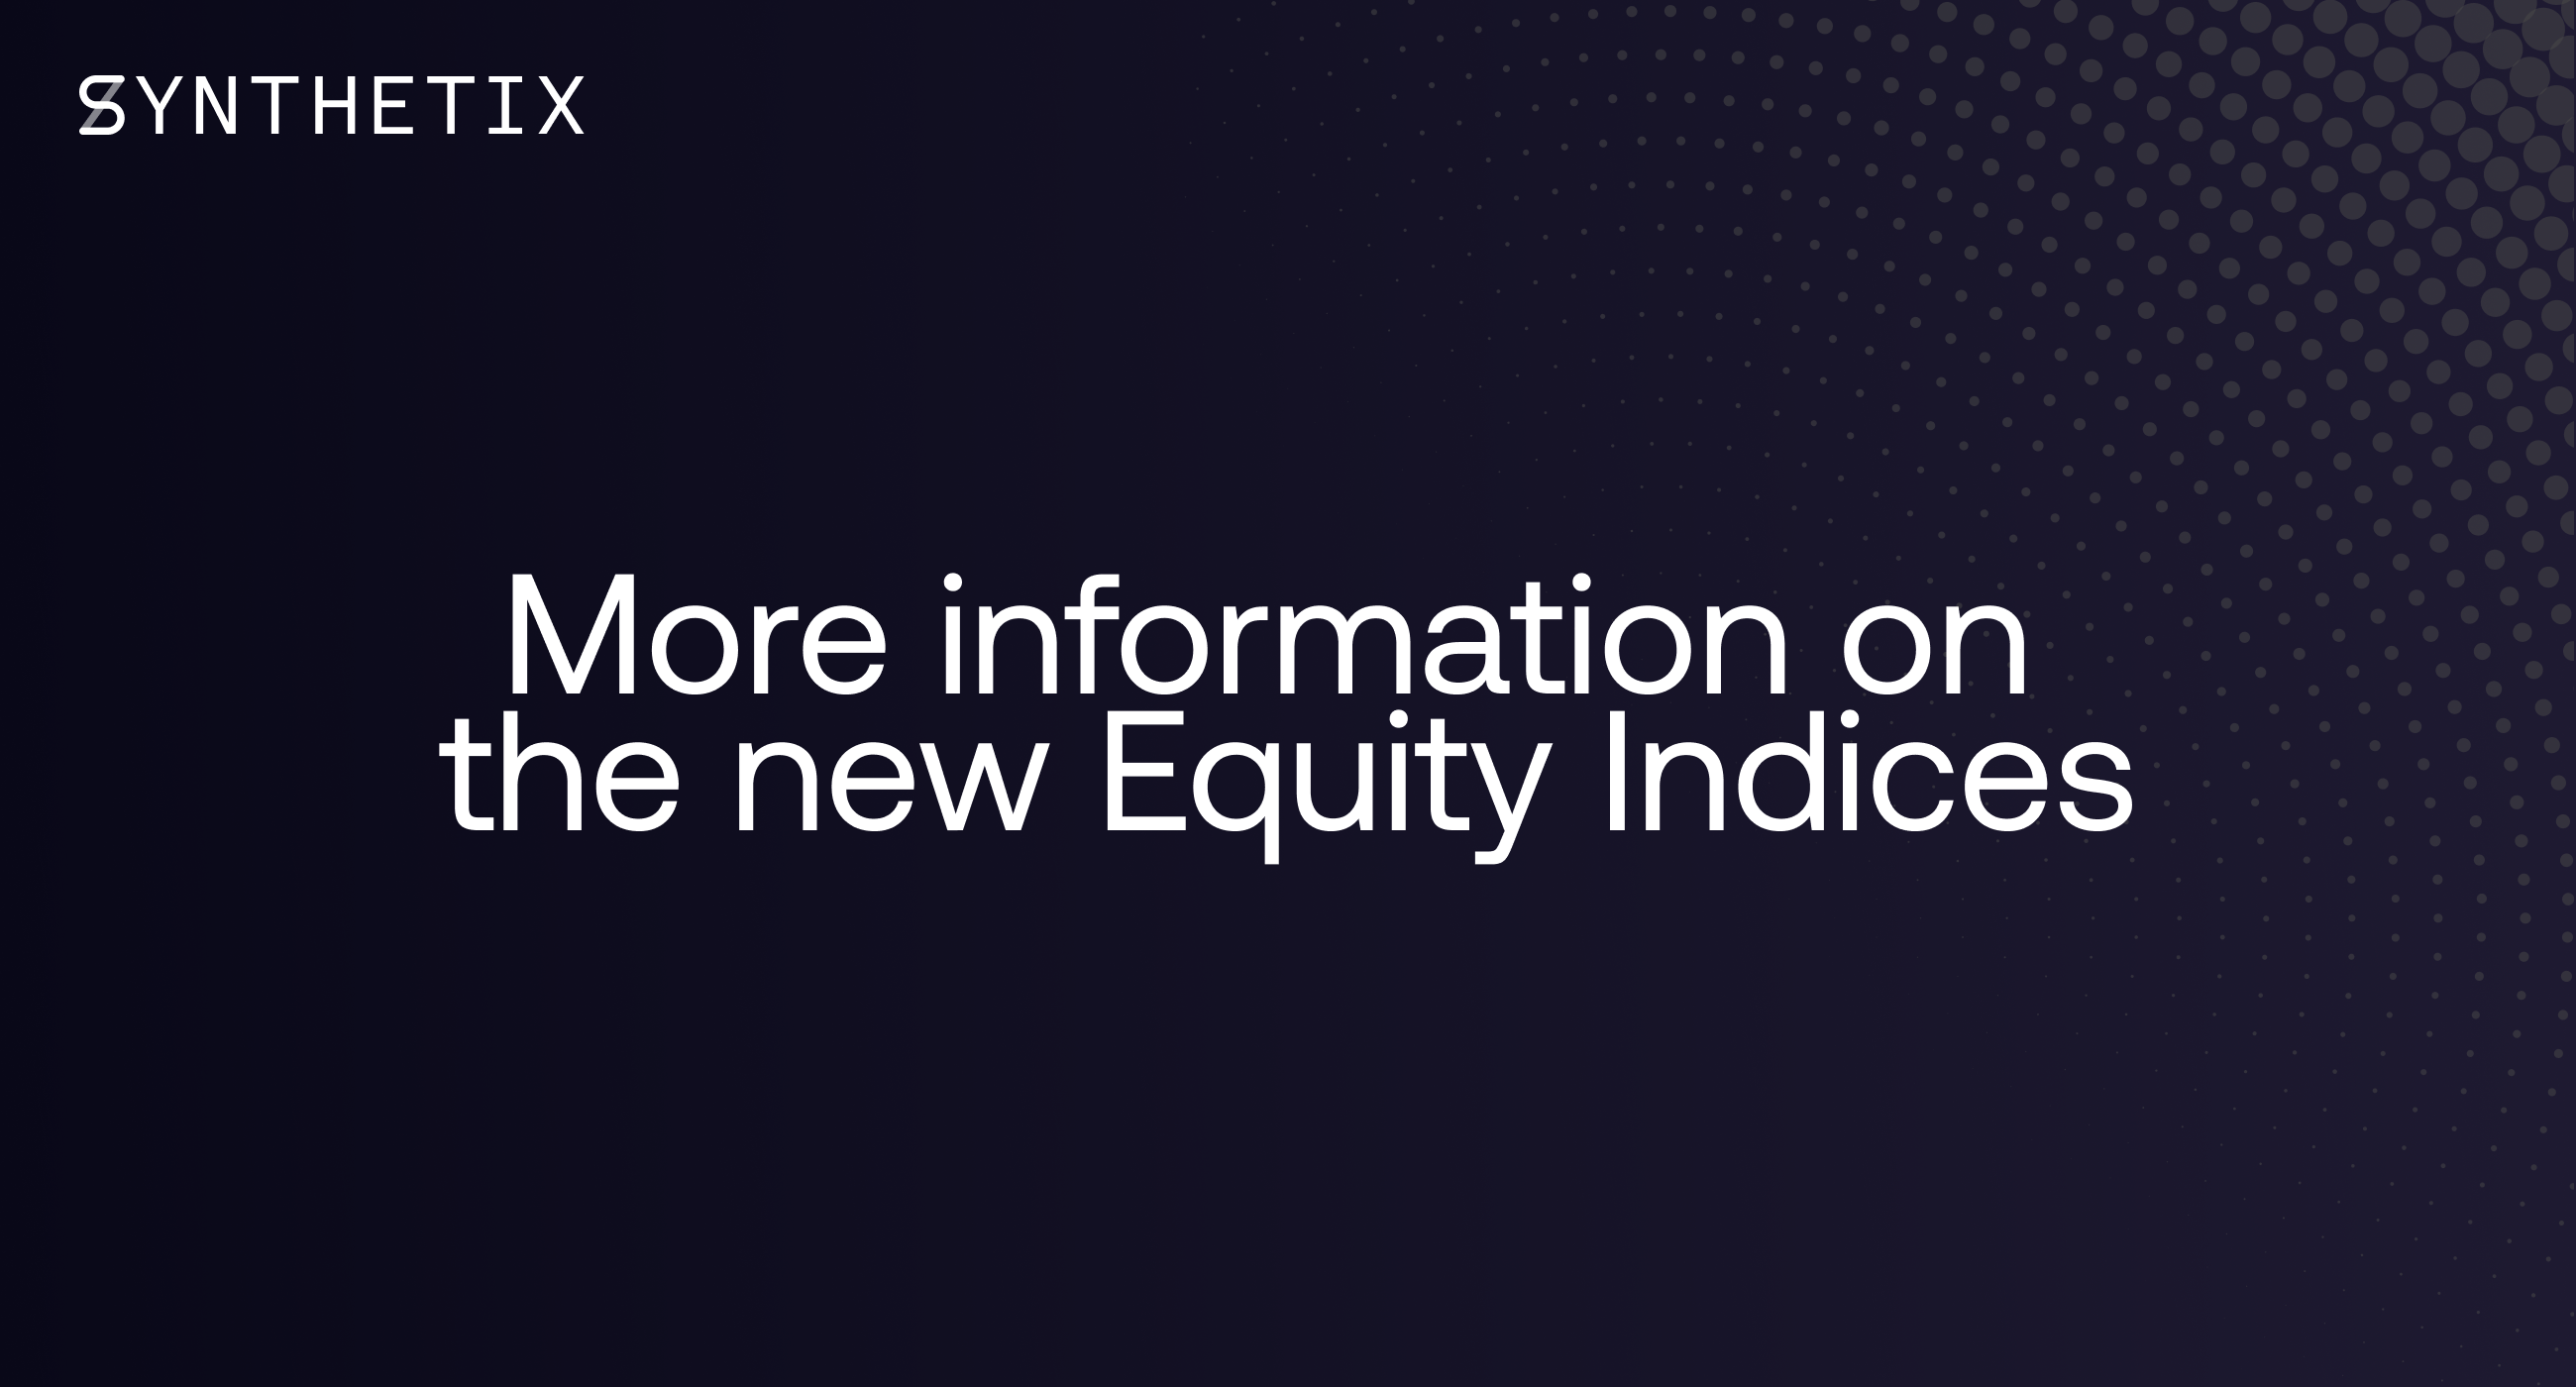 More Information on the new Equity Indices